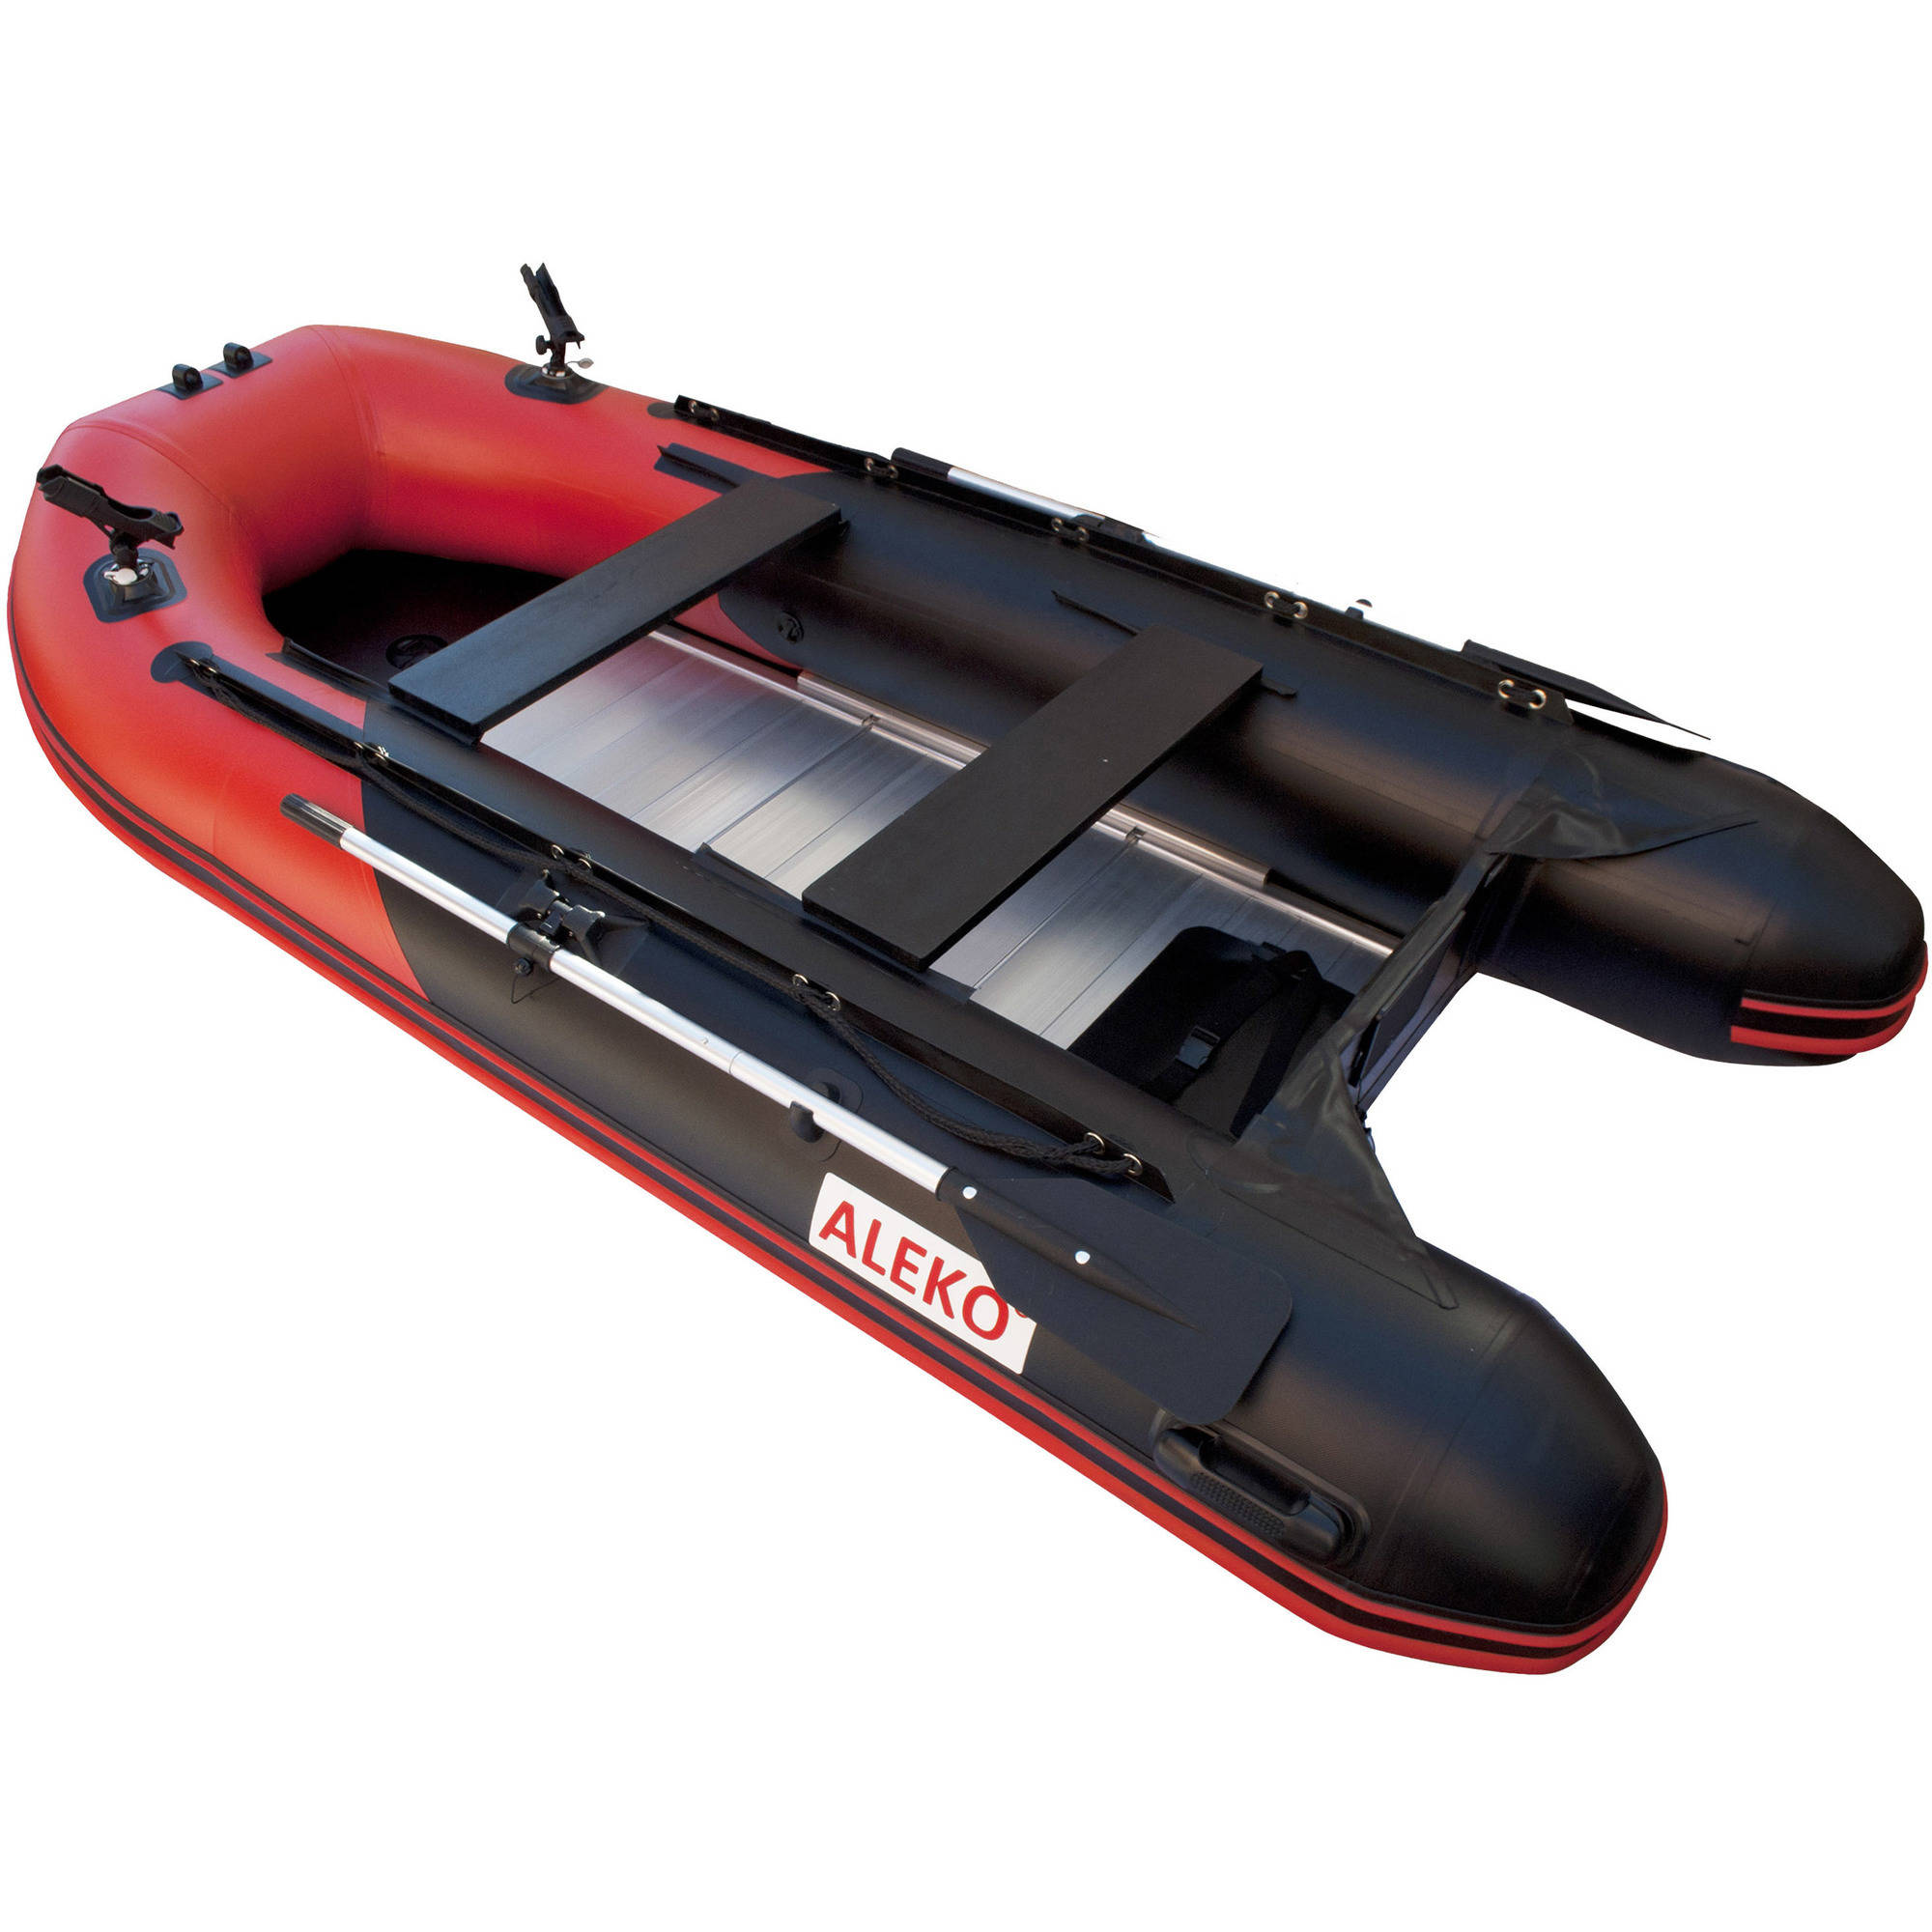 ALEKO PRO Fishing Inflatable Boat with Aluminum Floor - Front Board Holders - 10.5 ft - Red and Black